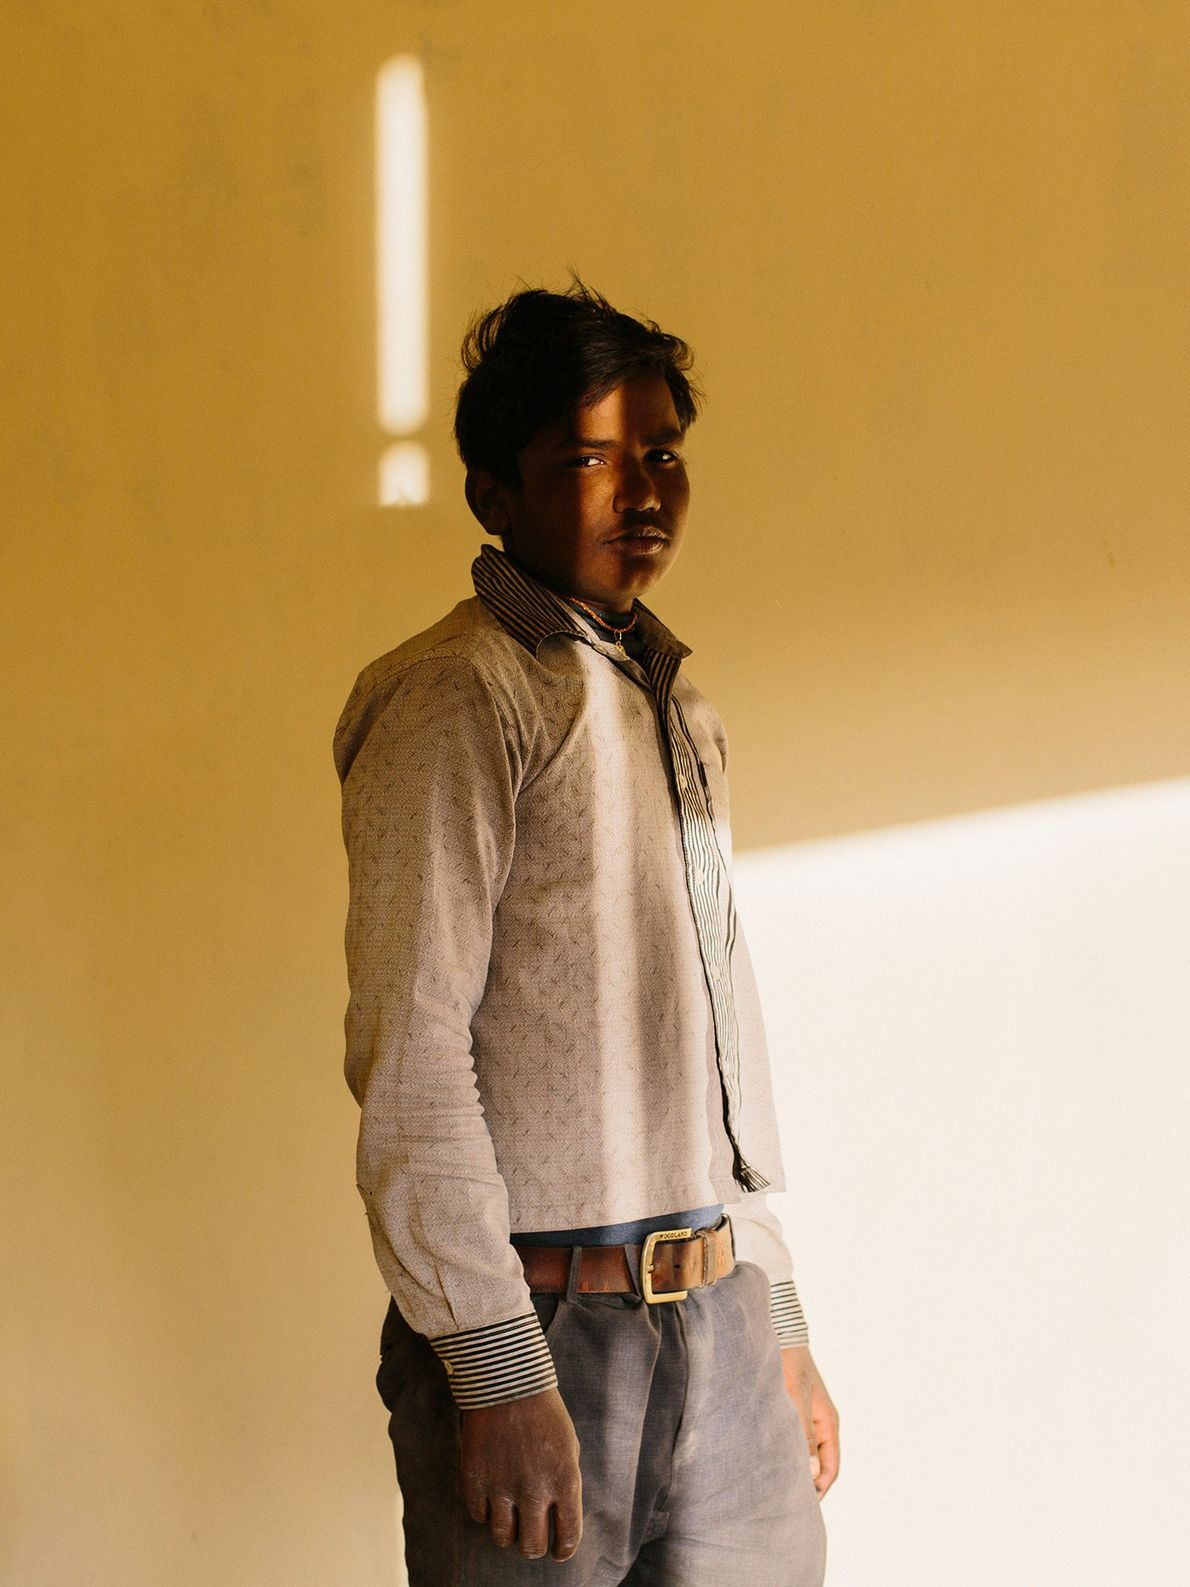 A migrant worker from Bihar, India poses for a portrait.